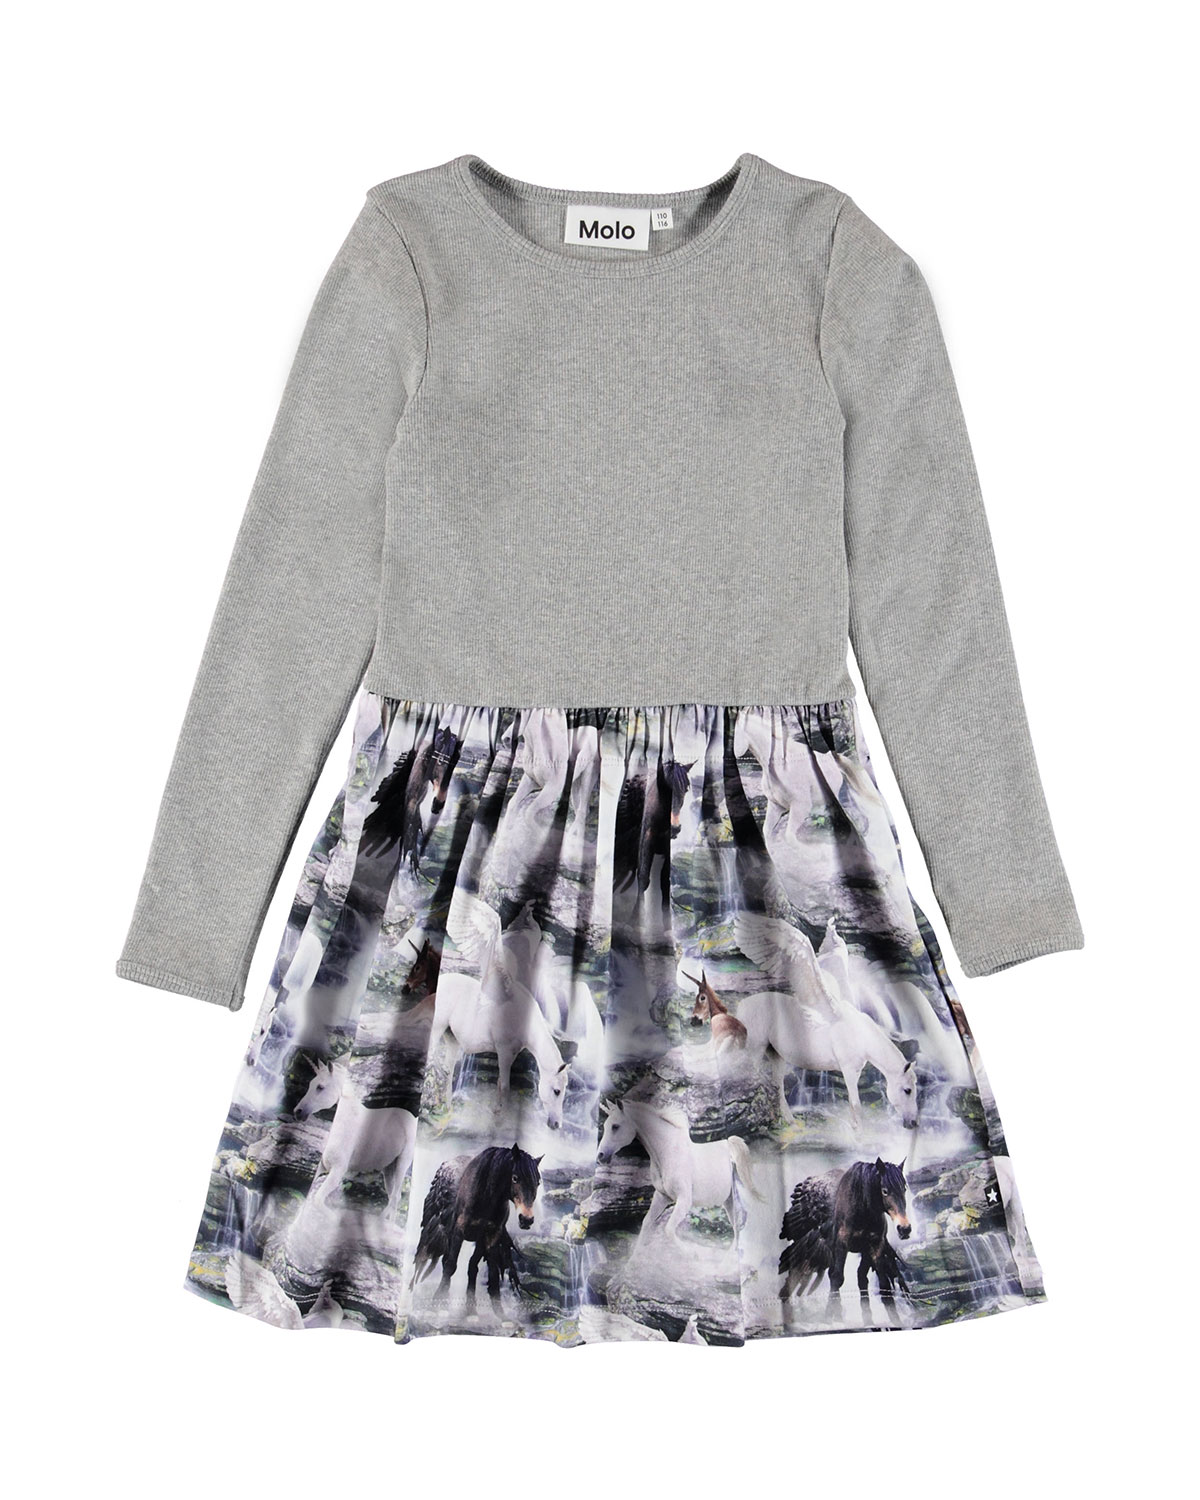 Molo GIRL'S CREDENCE LONG-SLEEVE RIBBED DRESS W/ HORSE PRINT SKIRT